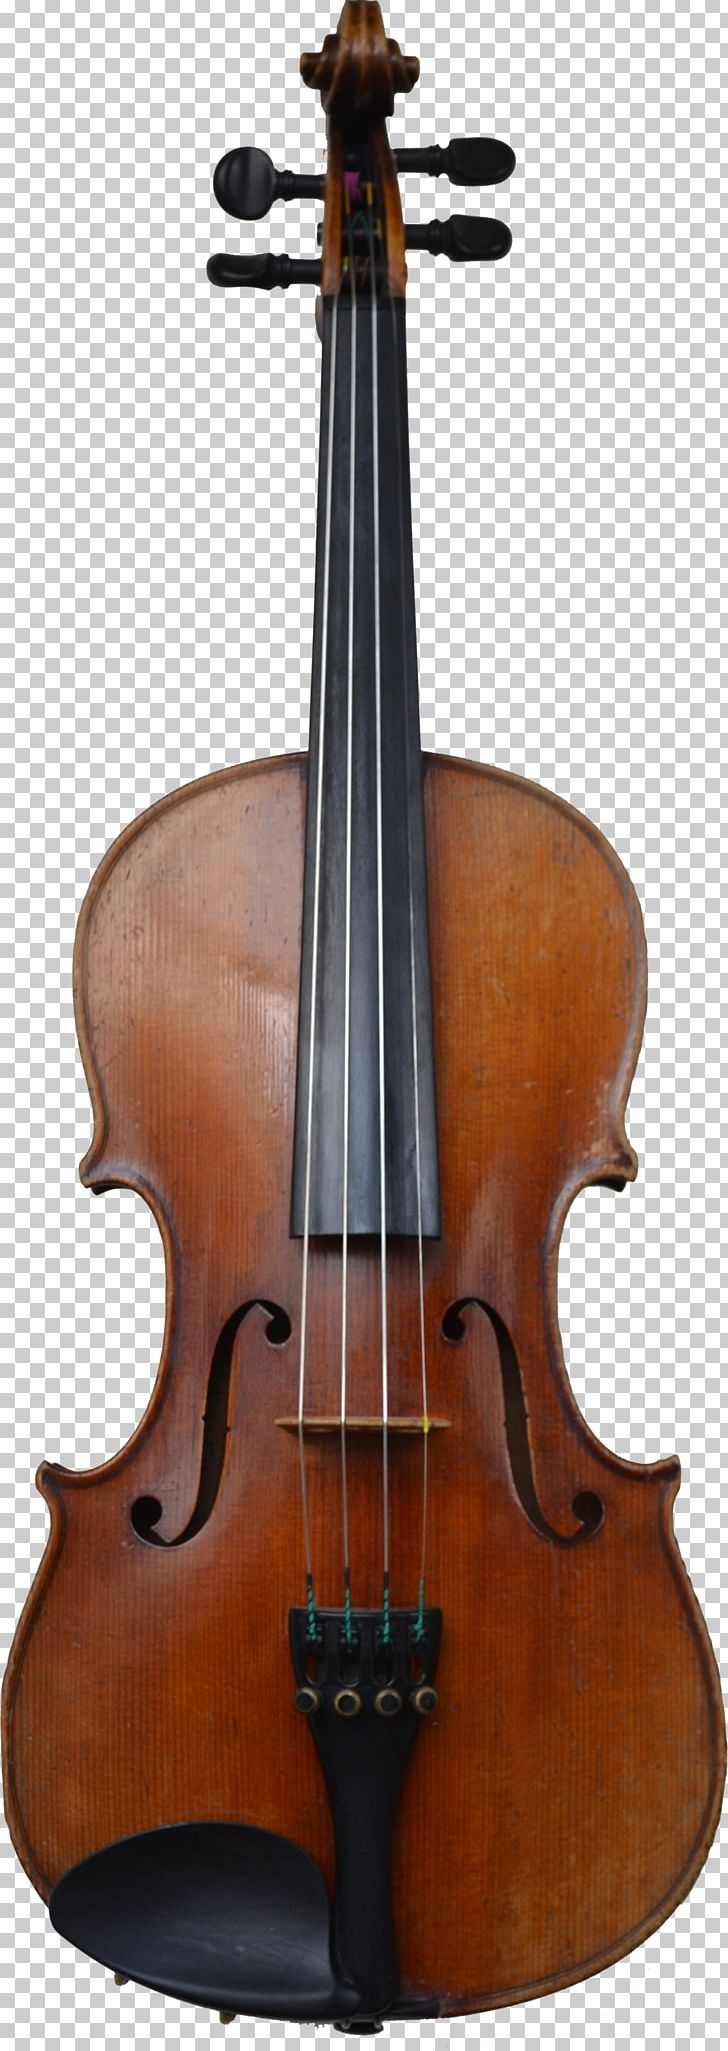 Cello Violin Family Musical Instrument Viola PNG, Clipart, Acoustic Electric Guitar, Antonio Stradivari, Bass Guitar, Bass Violin, Bow Free PNG Download